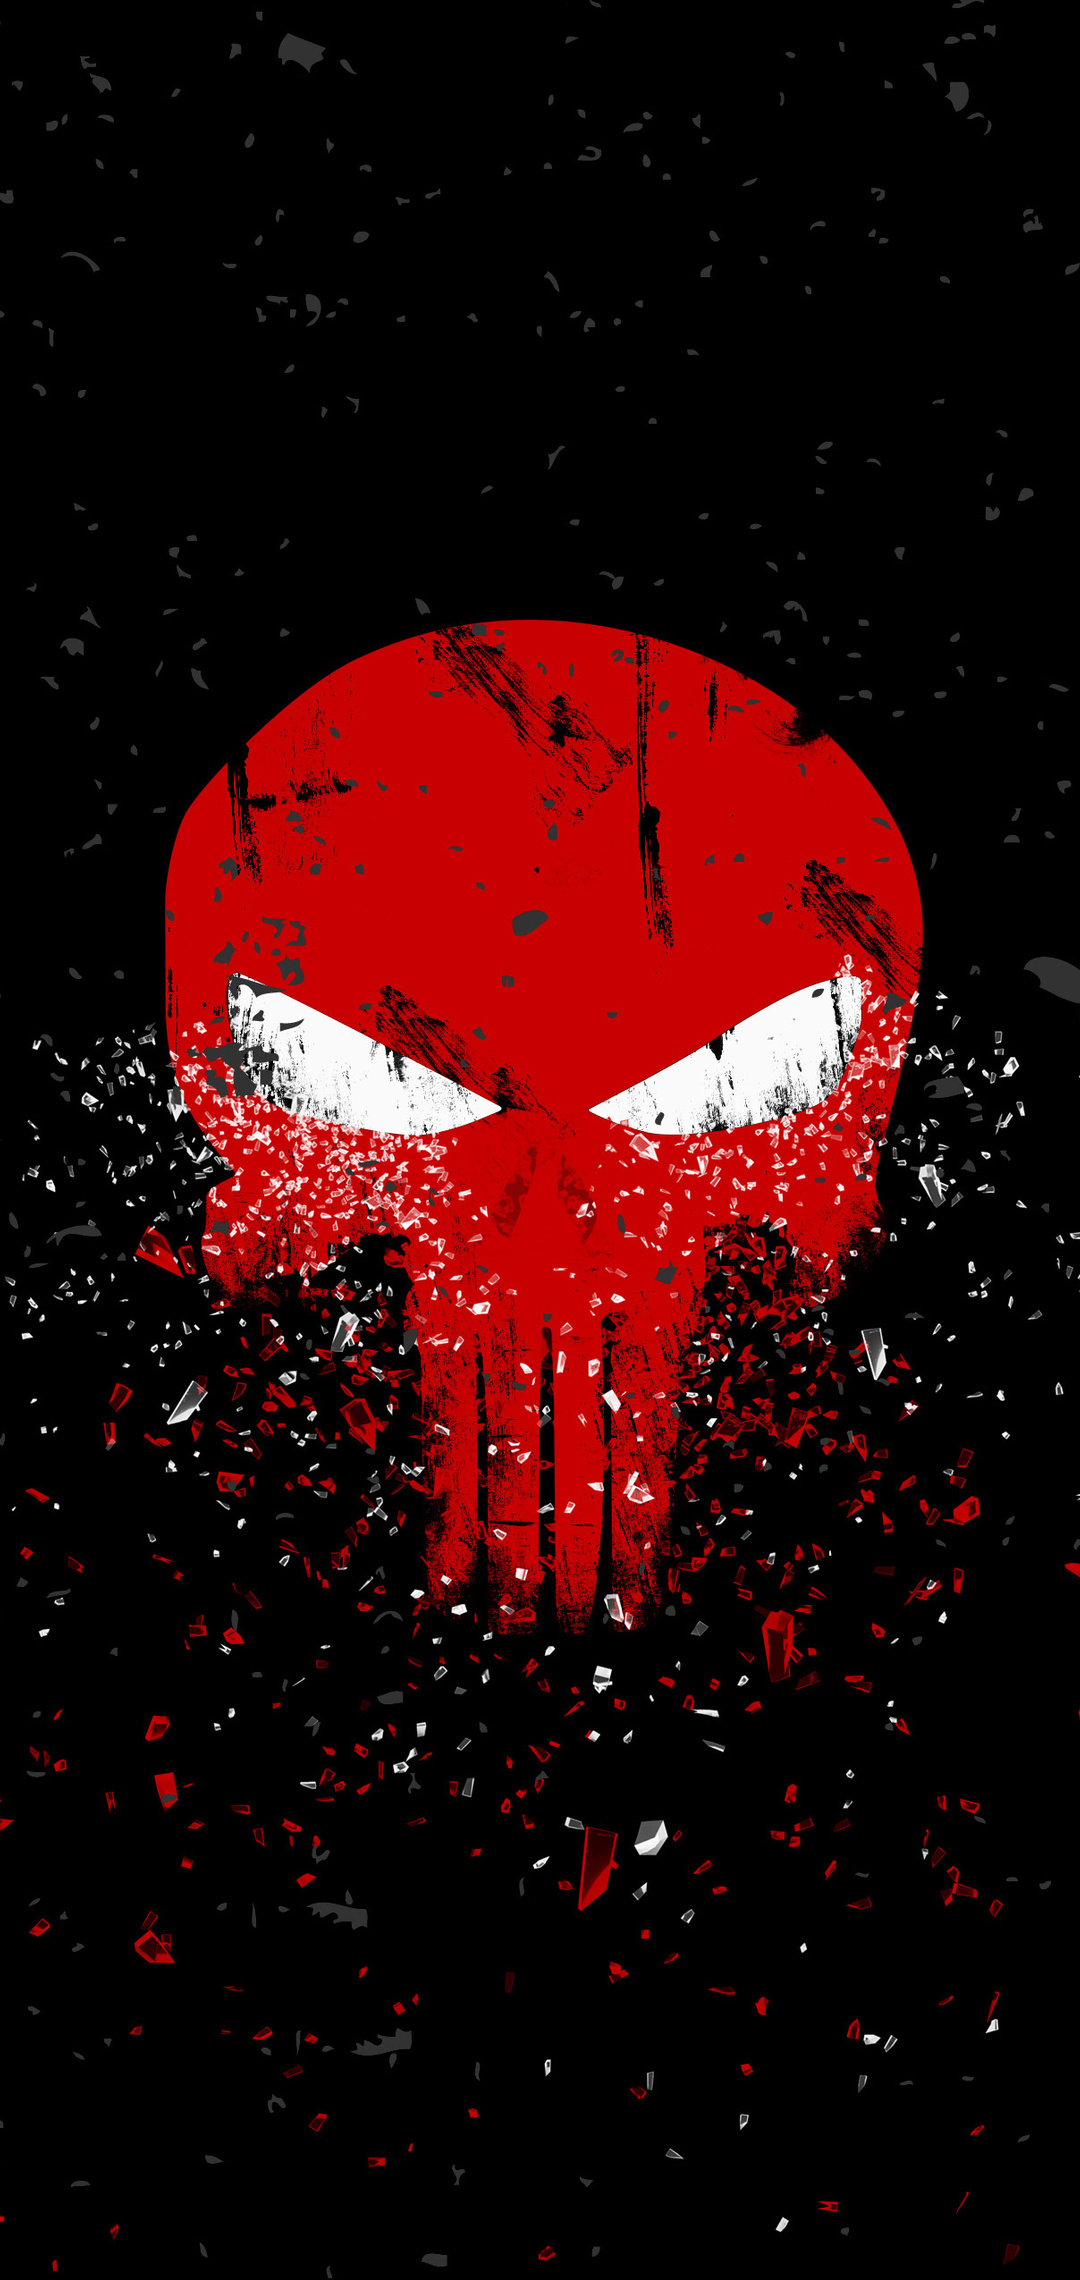 1080x2280 Punisher Logo 4k One Plus 6,Huawei p20,Honor view